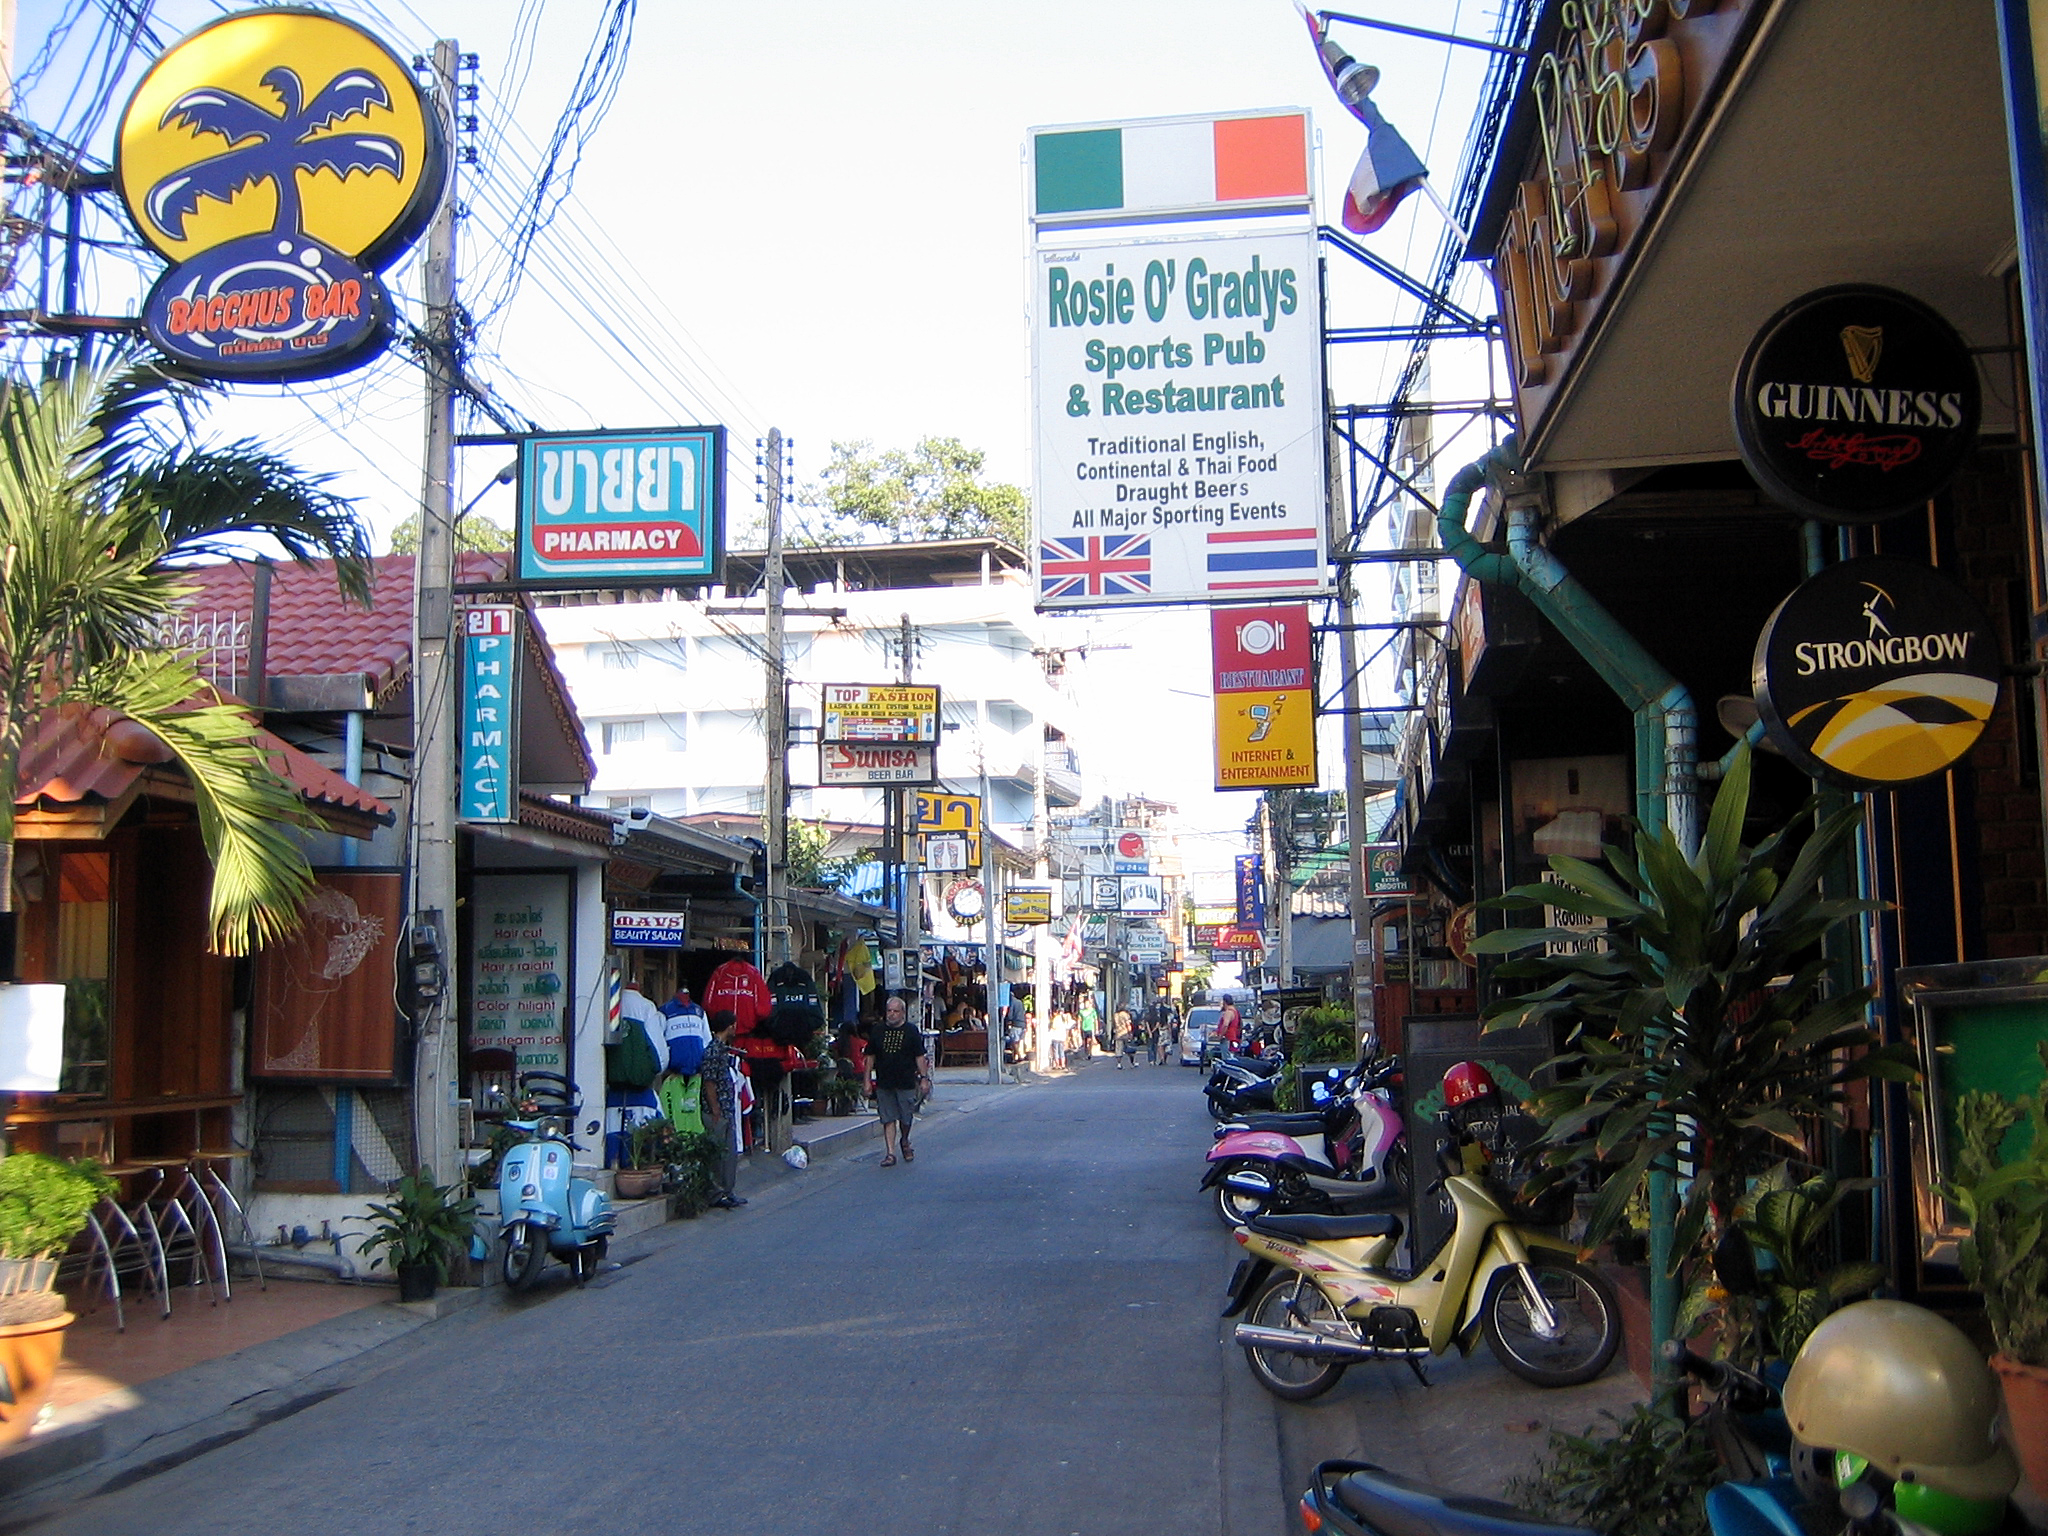 Bestand pattaya soi 7 wikipedia for What is the soi